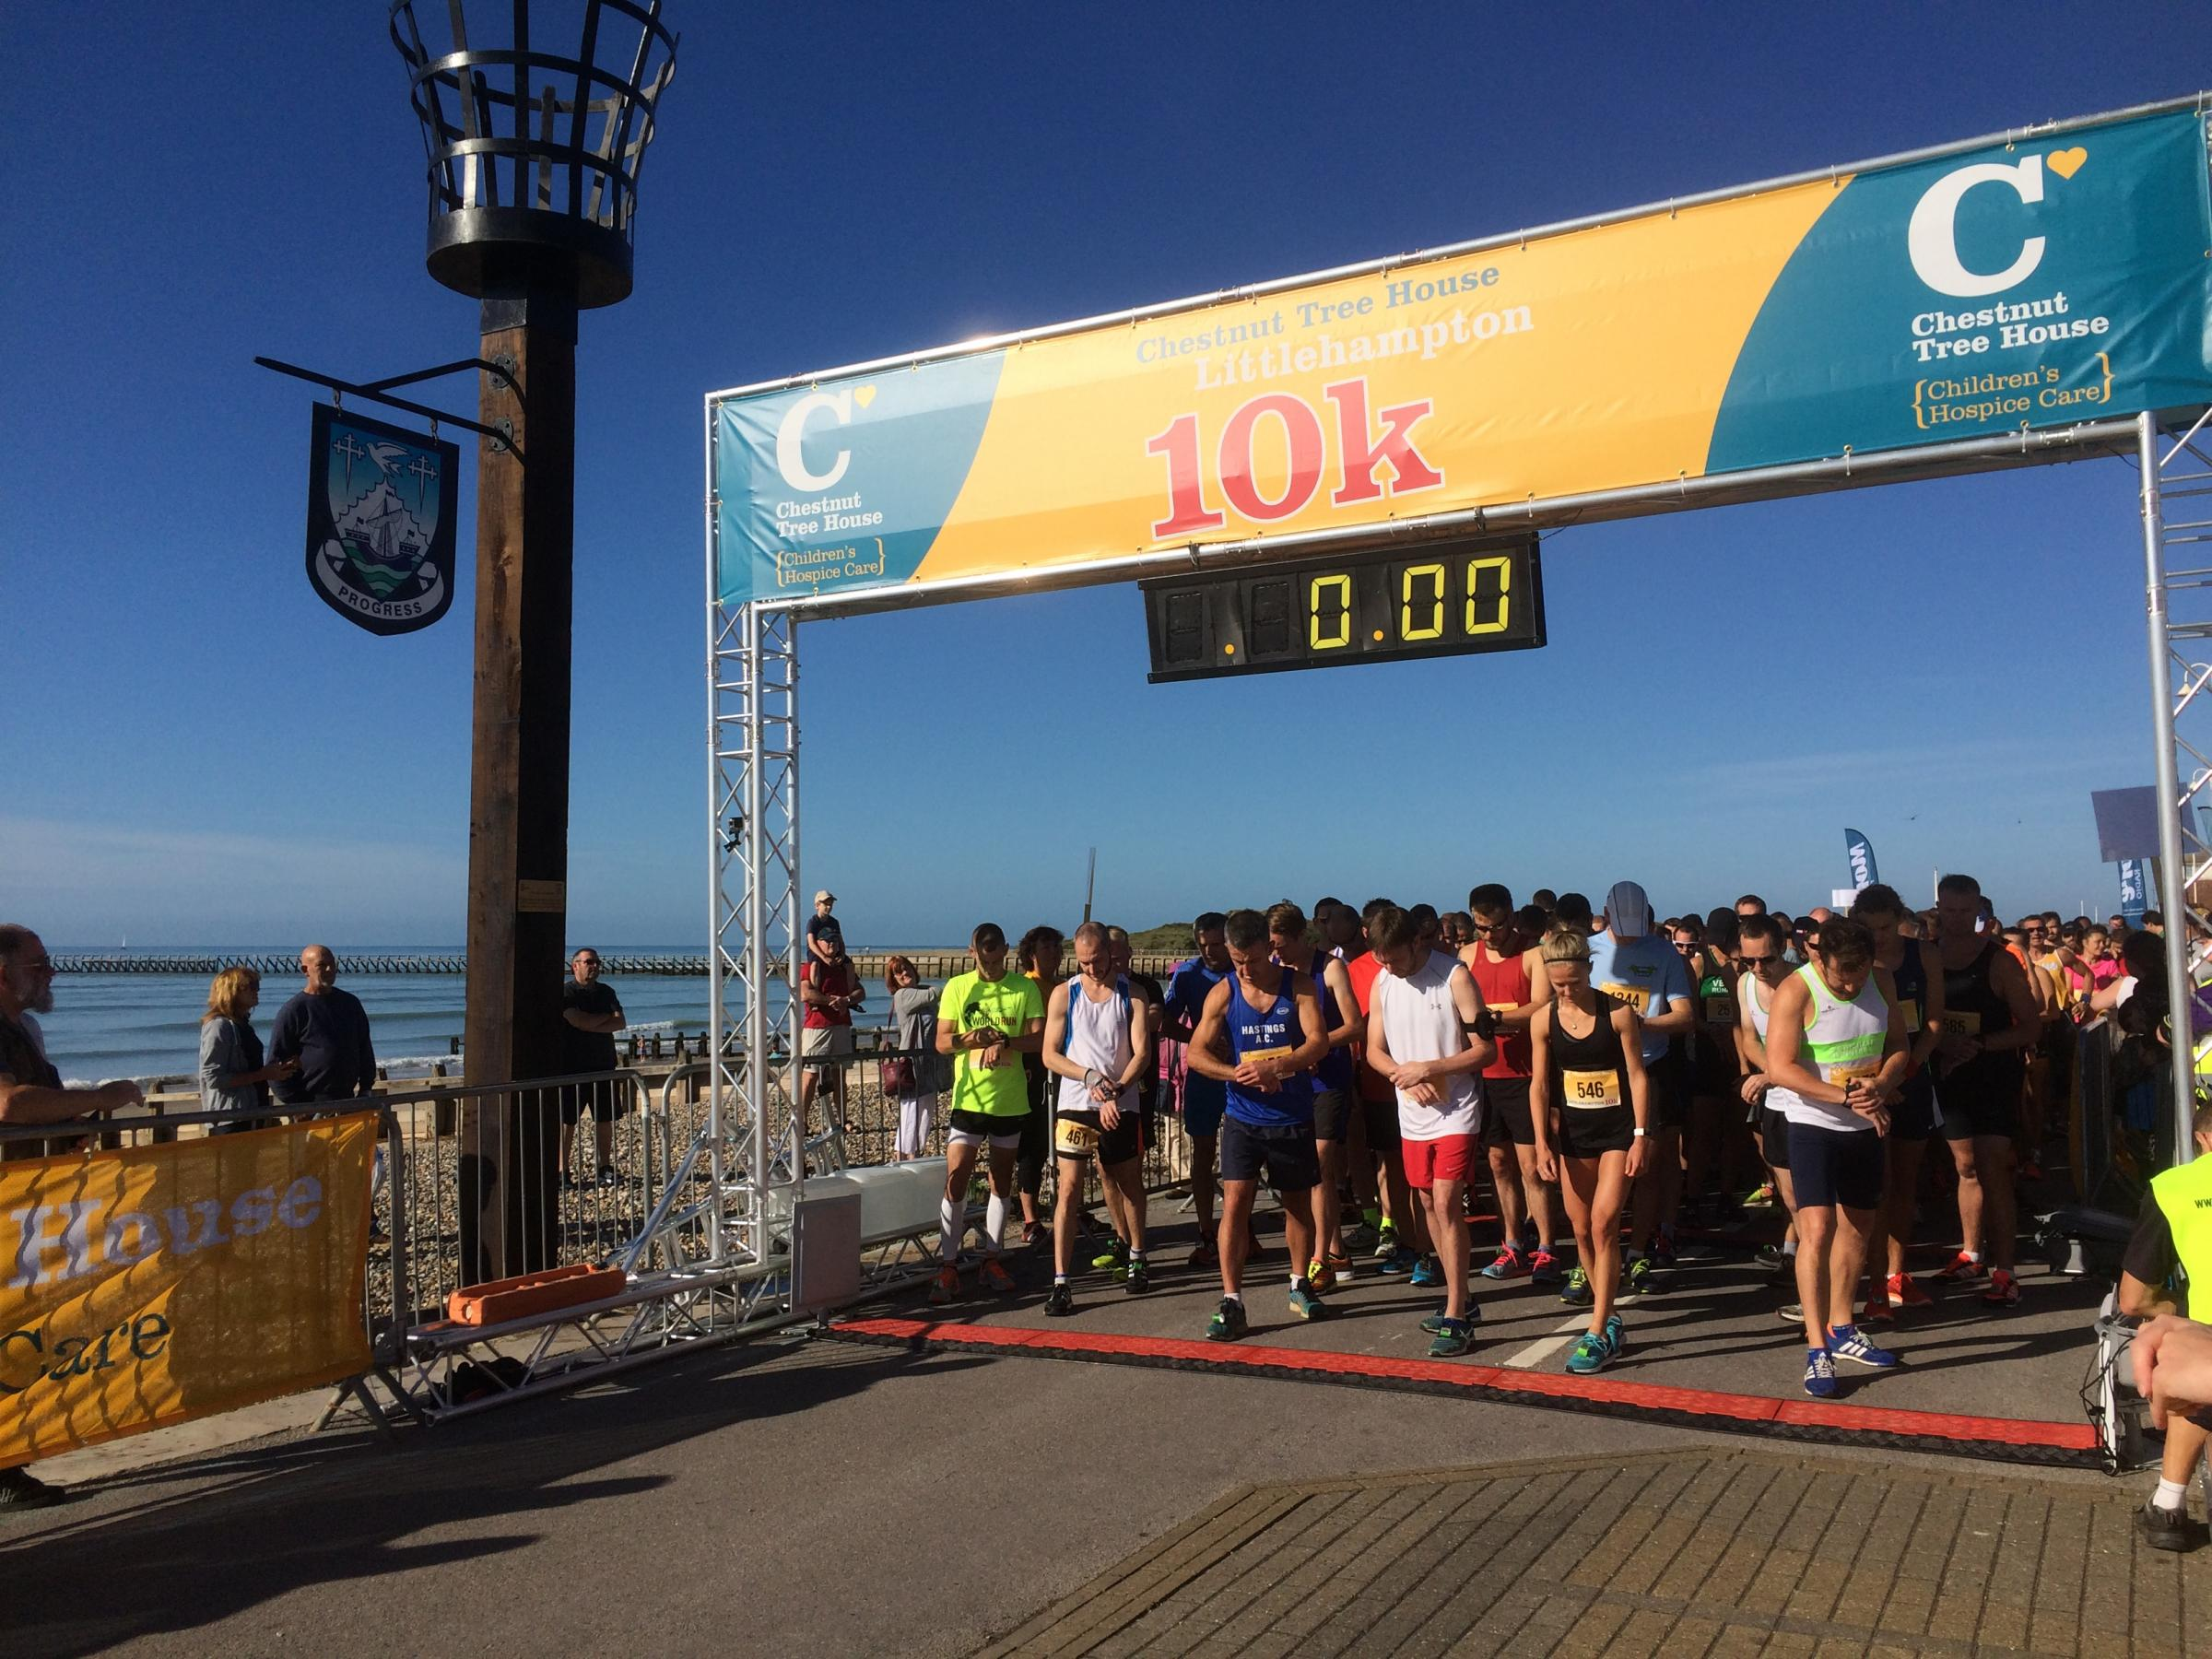 Chestnut Tree House Littlehampton 10K